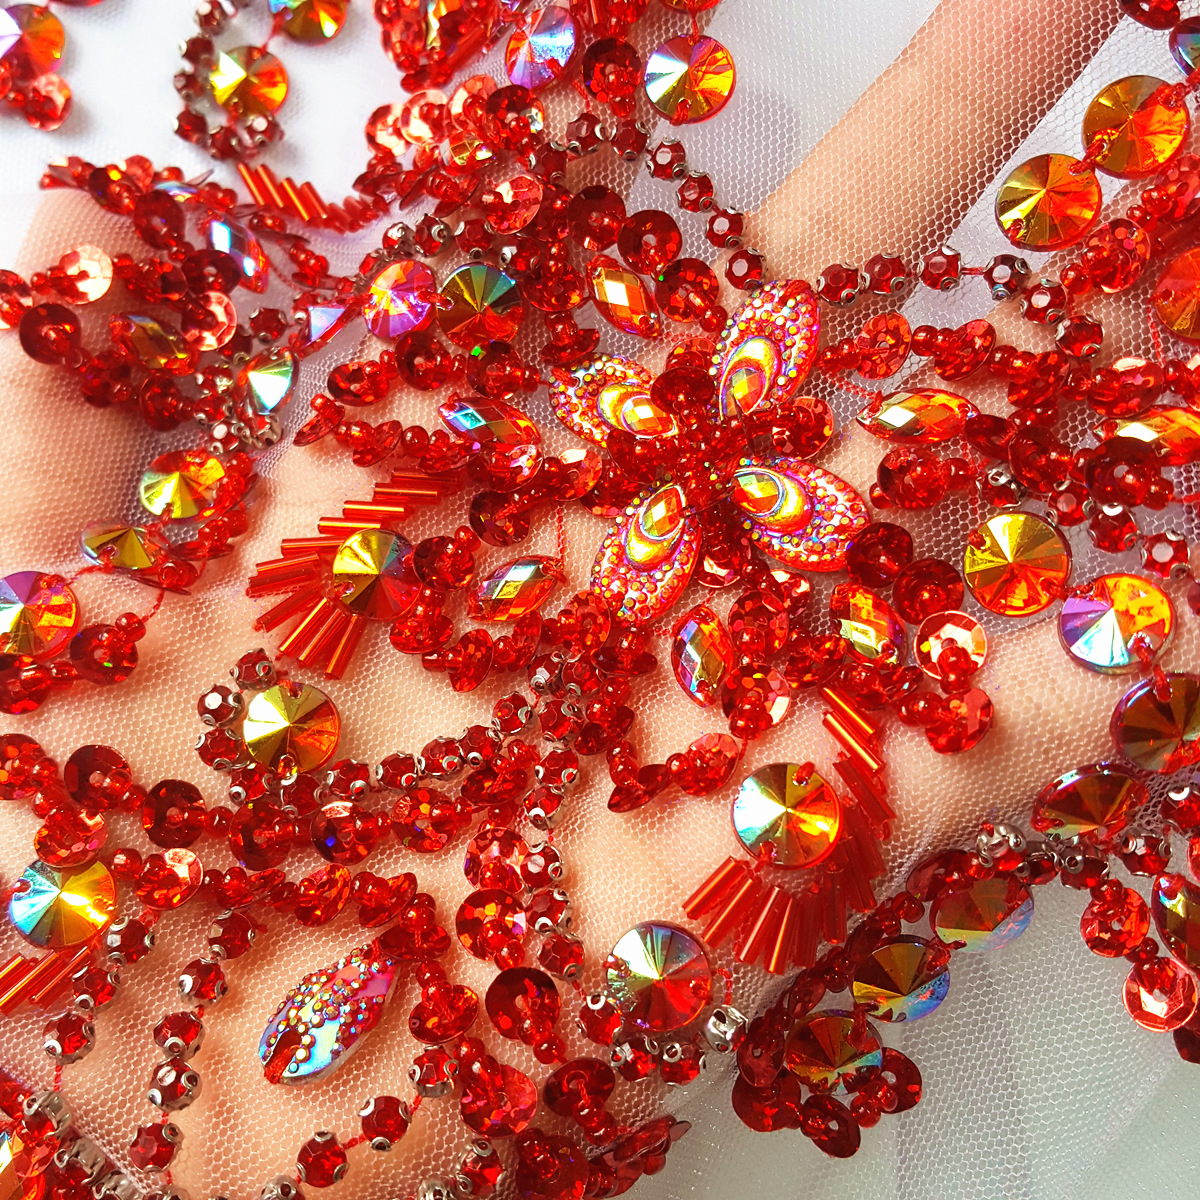 REd Goddess Beaded Rhinestones Sequins Beads Applique Crystals Patches  29x39cm Sewing For Wedding Evening Dress Decoration Craft-in Patches from  Home ... a2d4cc94f3b4